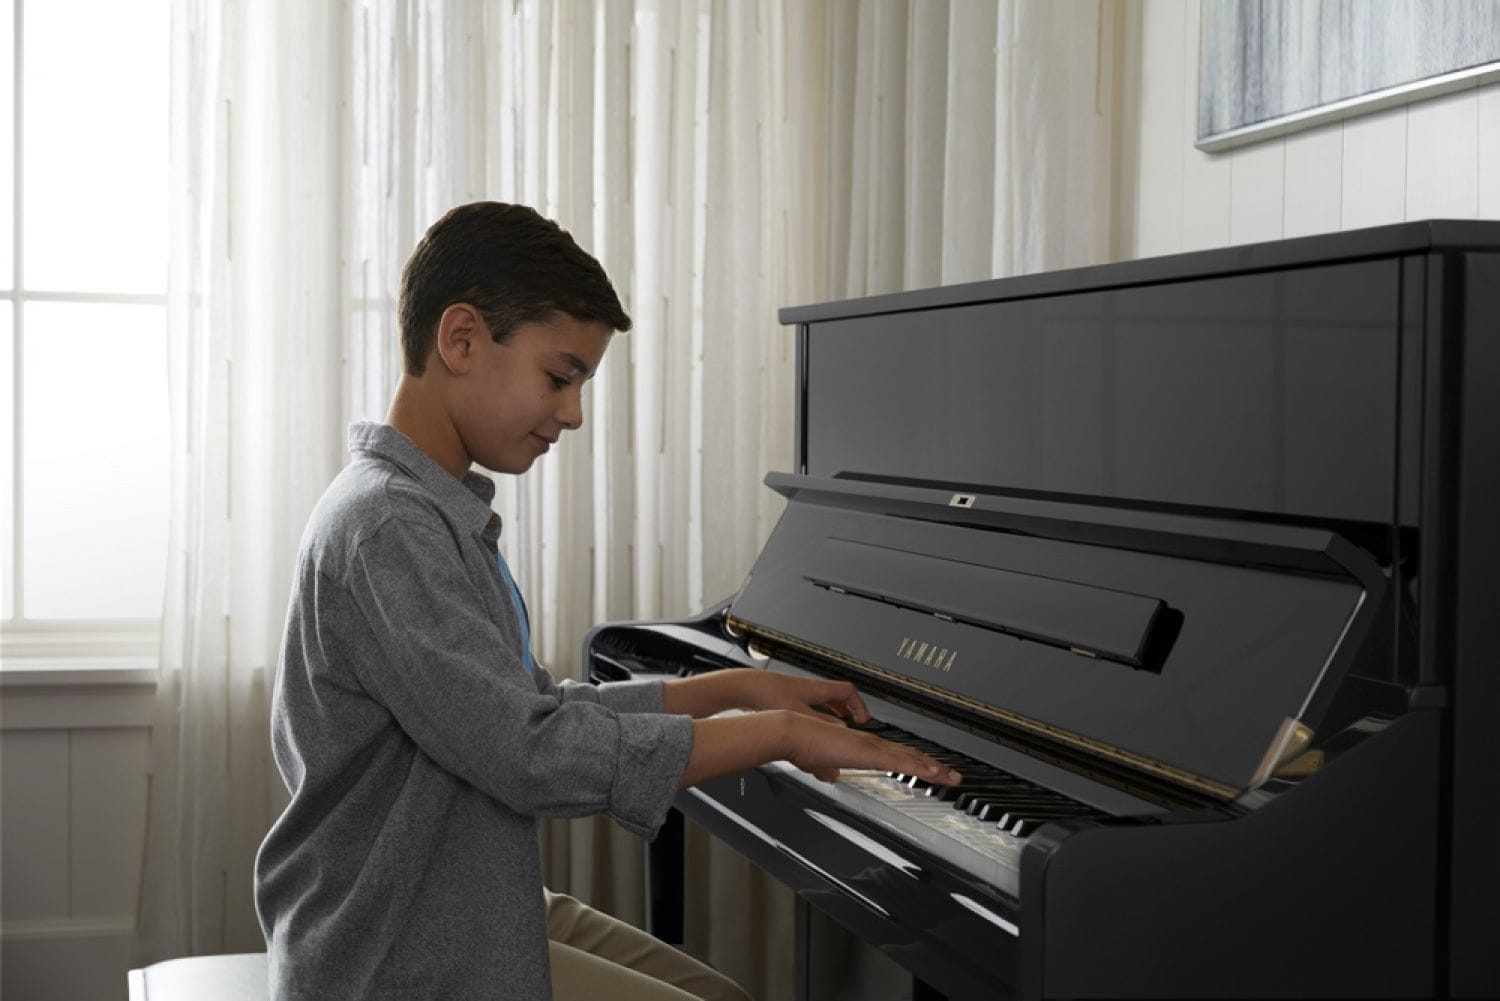 Young boy smiling as he plays a Yamaha upright piano in a living room setting.